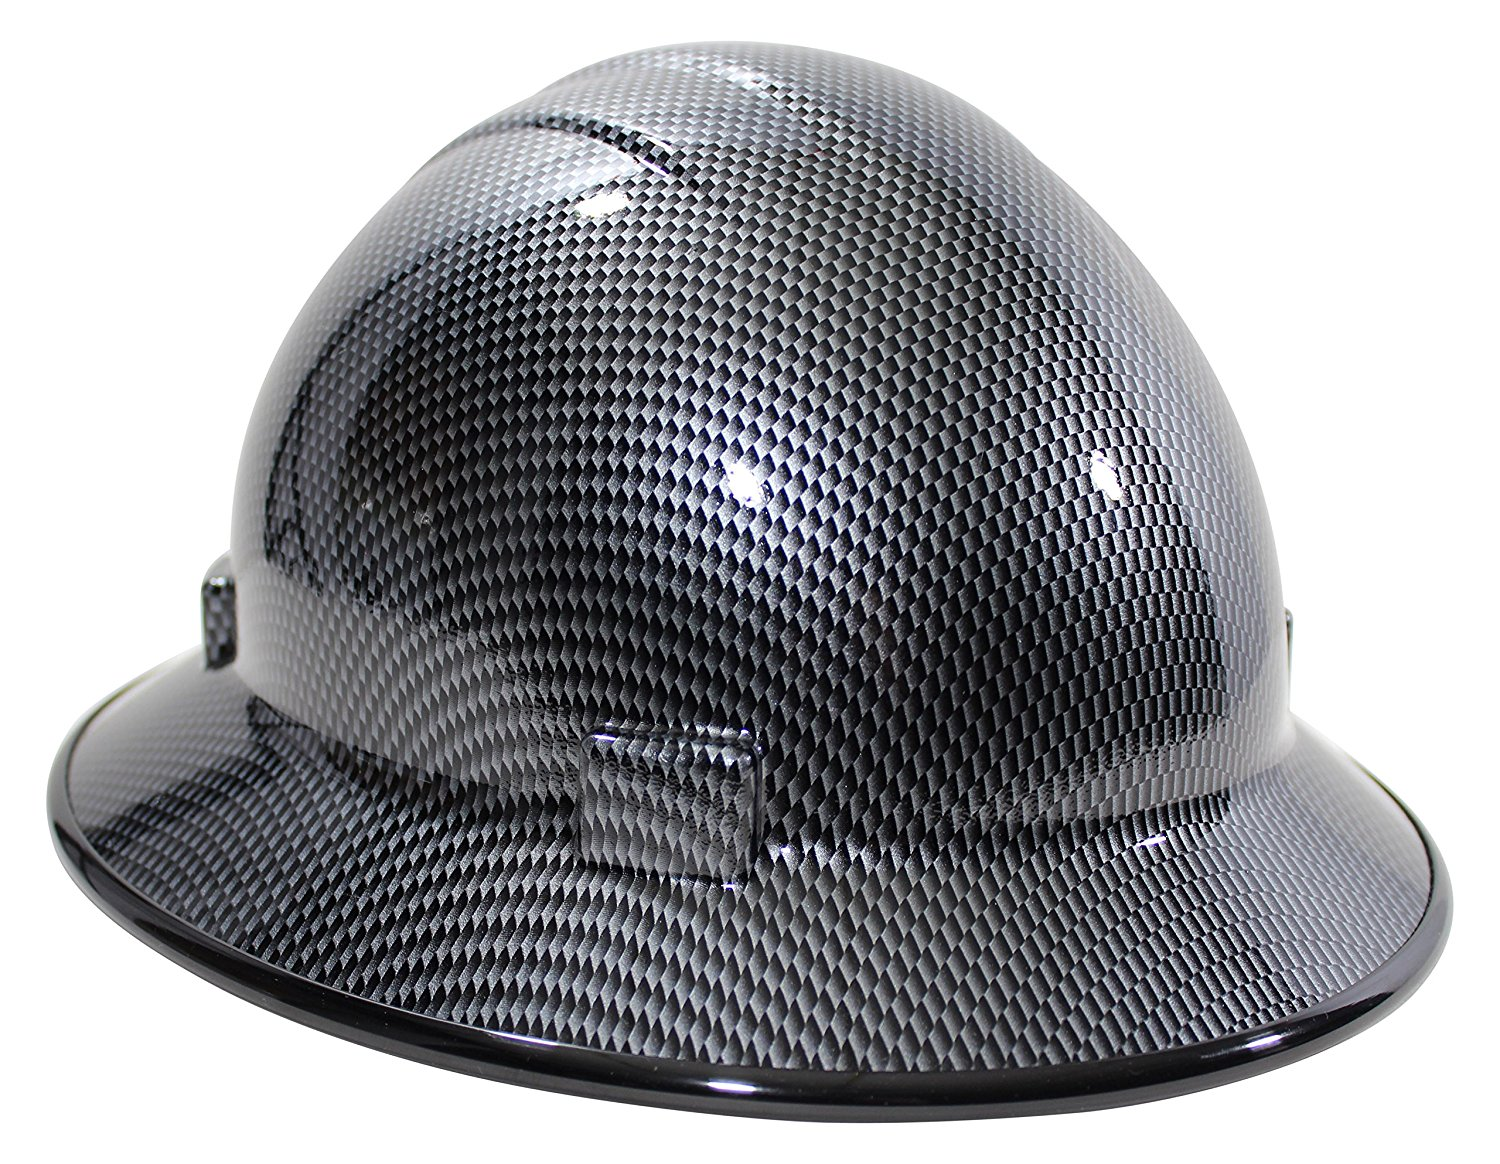 a153b9cf195 HardHatGear Custom Hydro Dipped Full Brim NON VENTED Hard Hat in  Carbon  Fiber Design